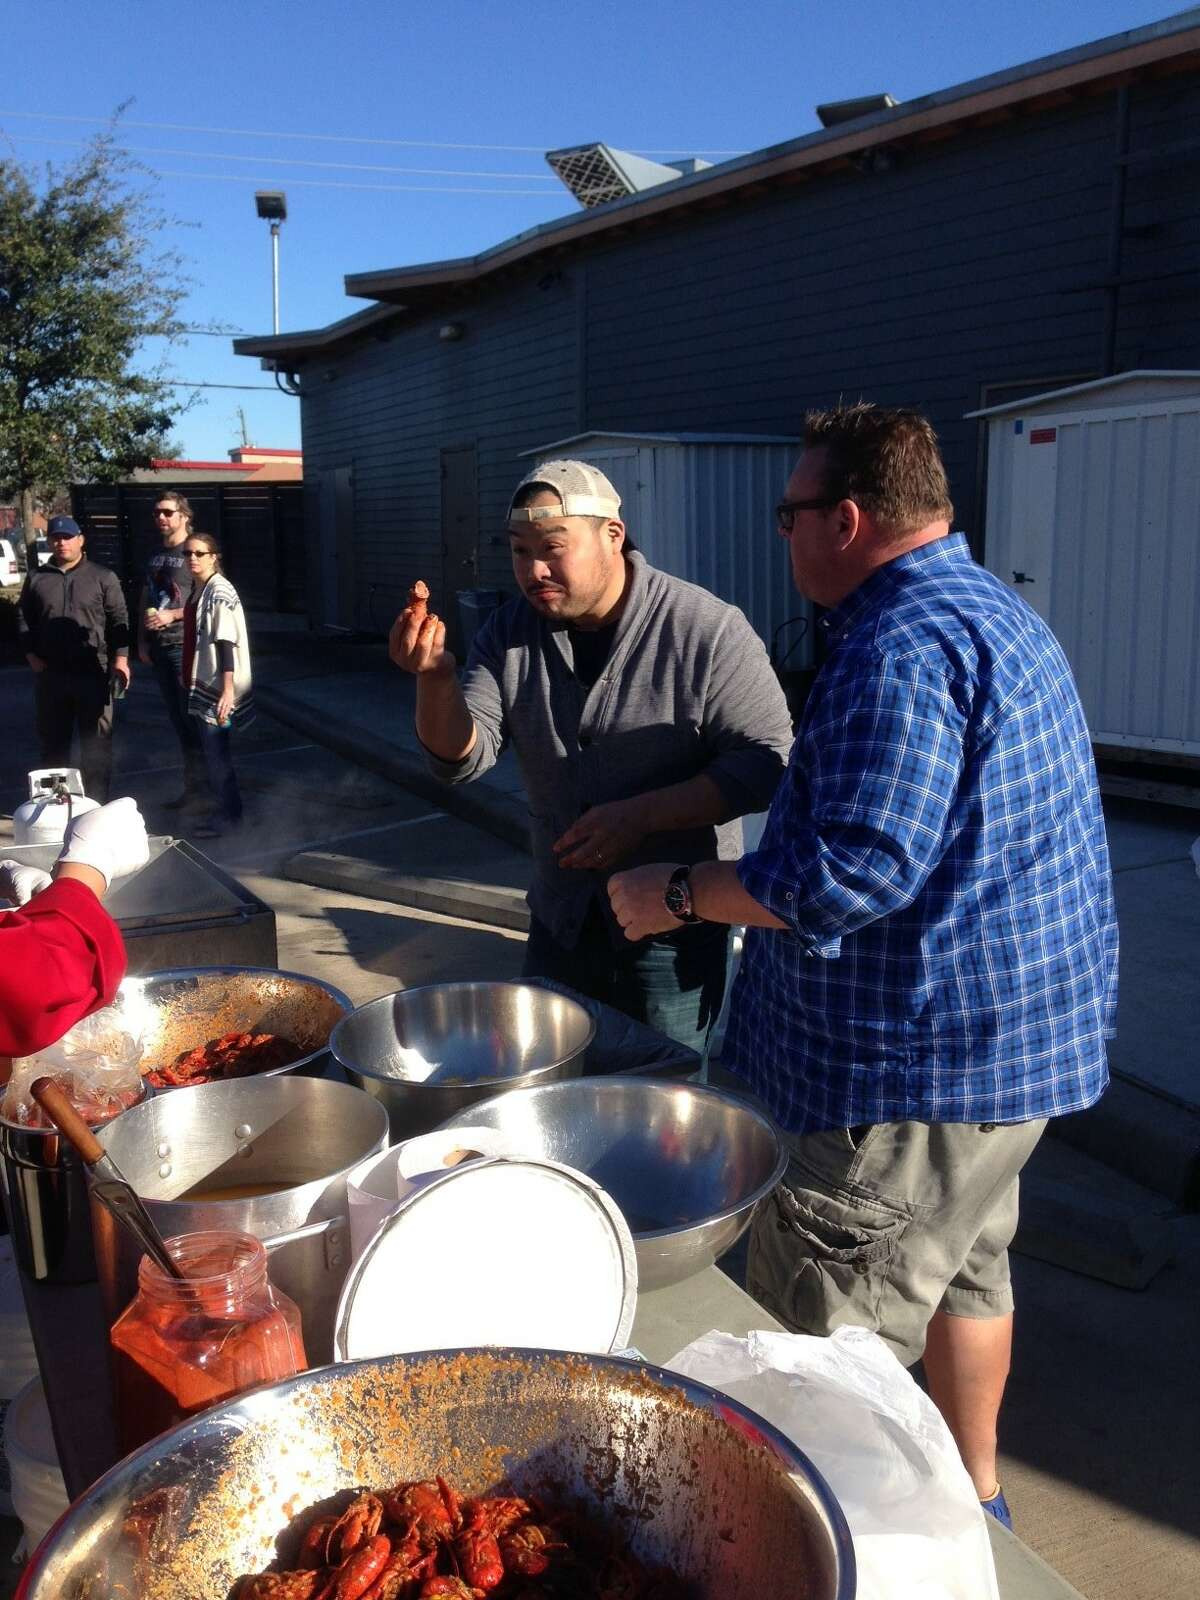 David Chang, the chef/founder of Momofuku restaurant group and multiple James Beard Award winner was in Houston over the weekend and was the guest at a crawfish boil at Underbelly on Sunday, Jan. 29. Chang, left, with Underbelly chef/owner Chris Shepherd.